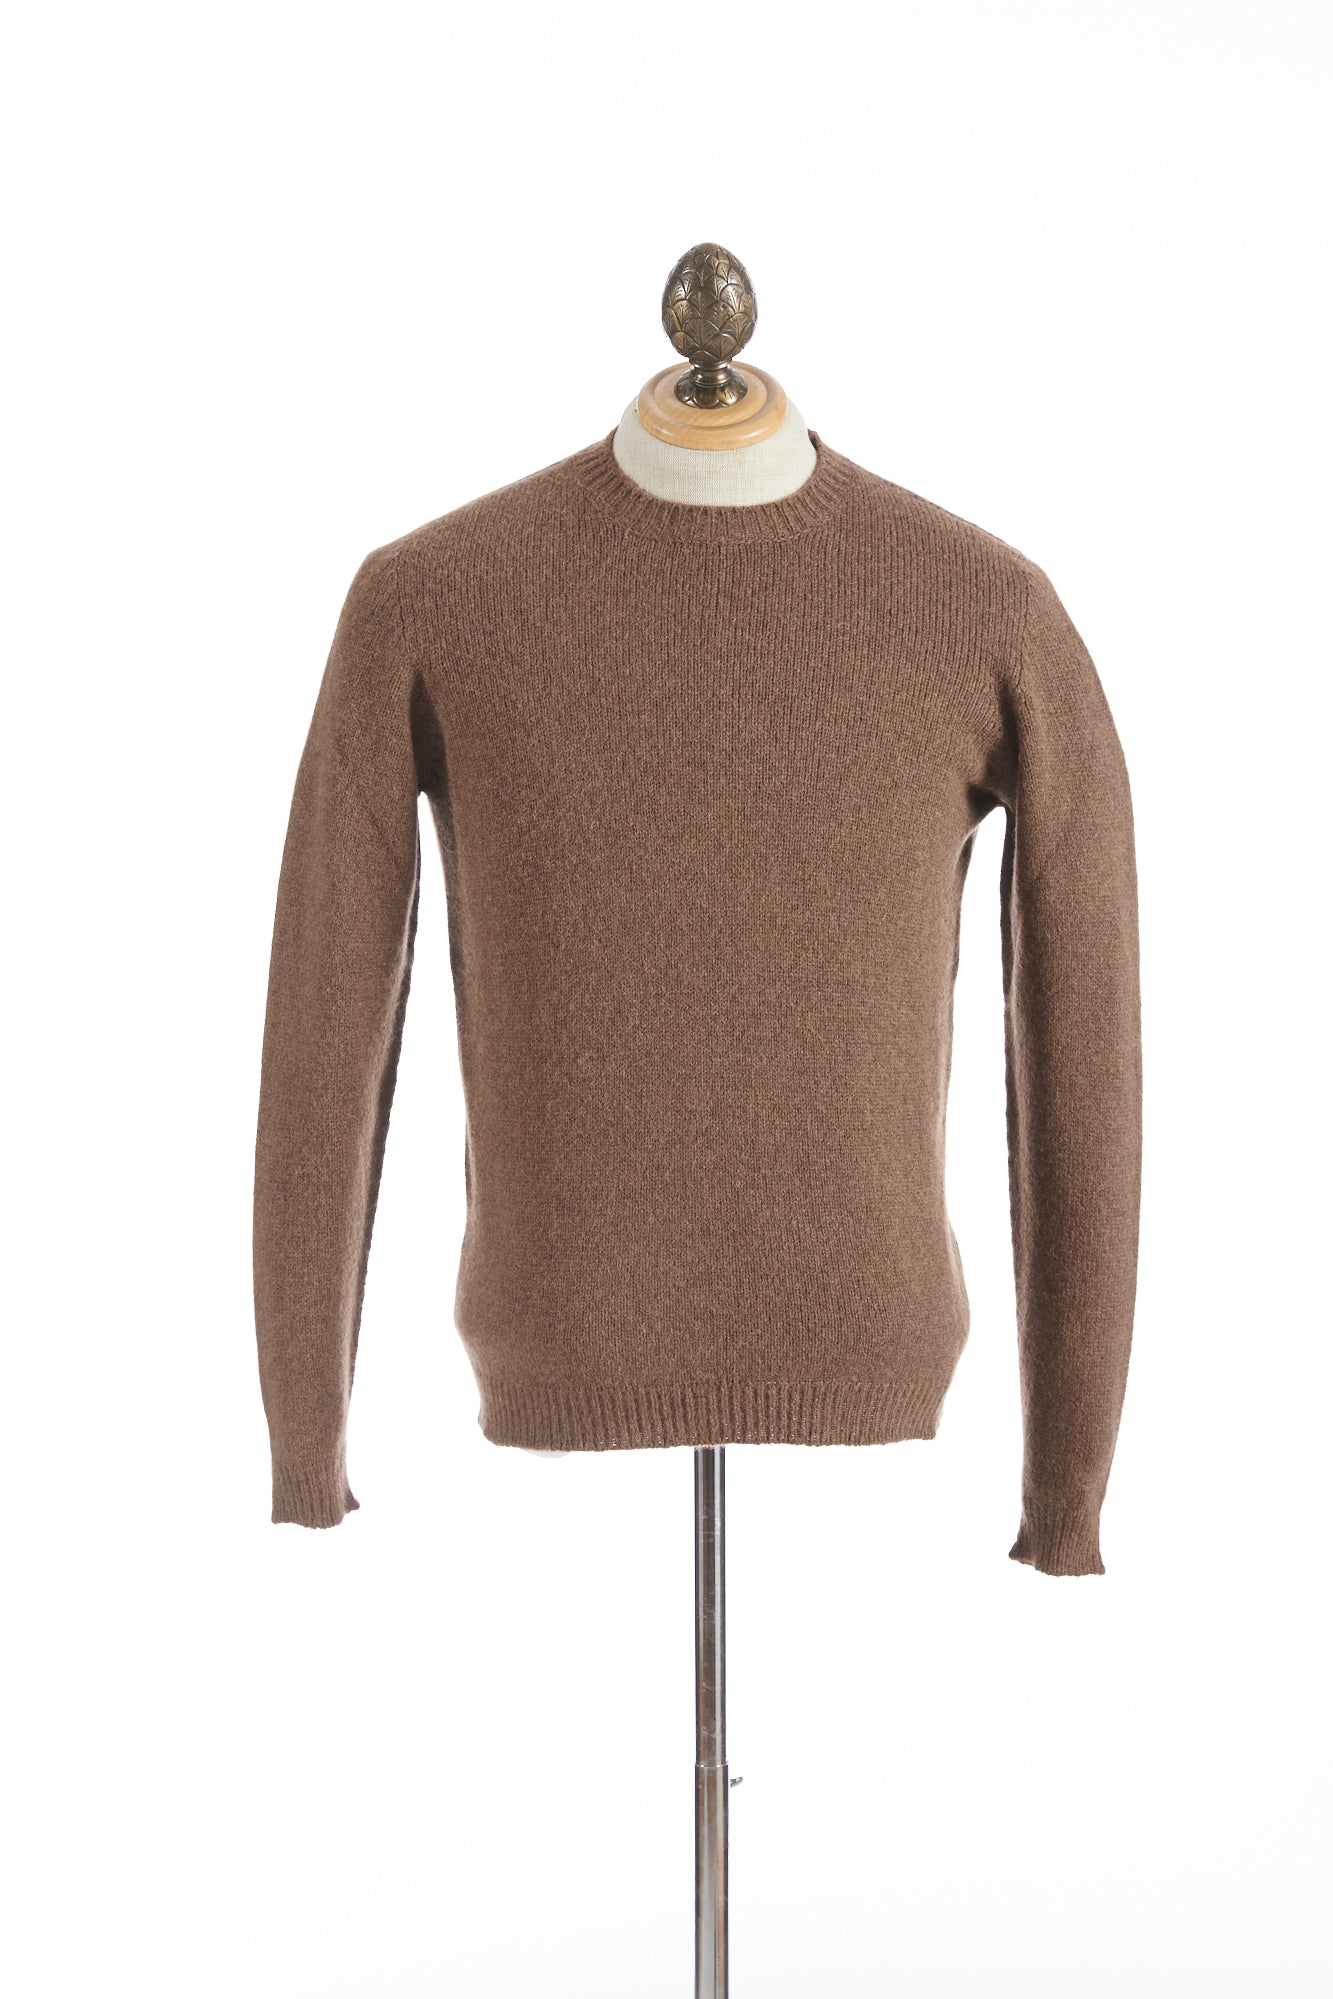 Roberto Collina Tobacco Wool-Camel Pullover Sweater